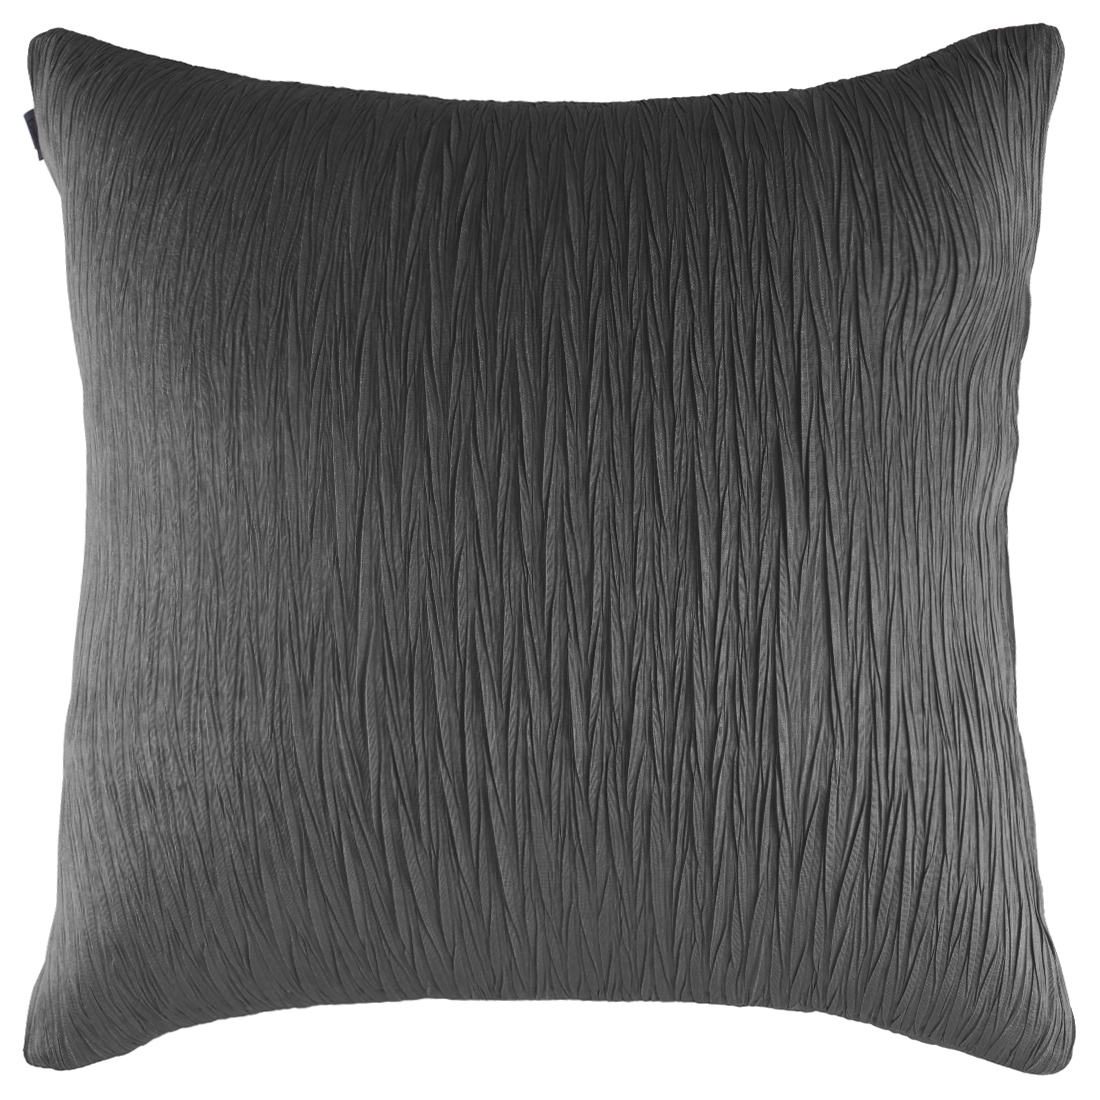 Blossom Polyester Cushion Covers in Grey Colour by Living Essence